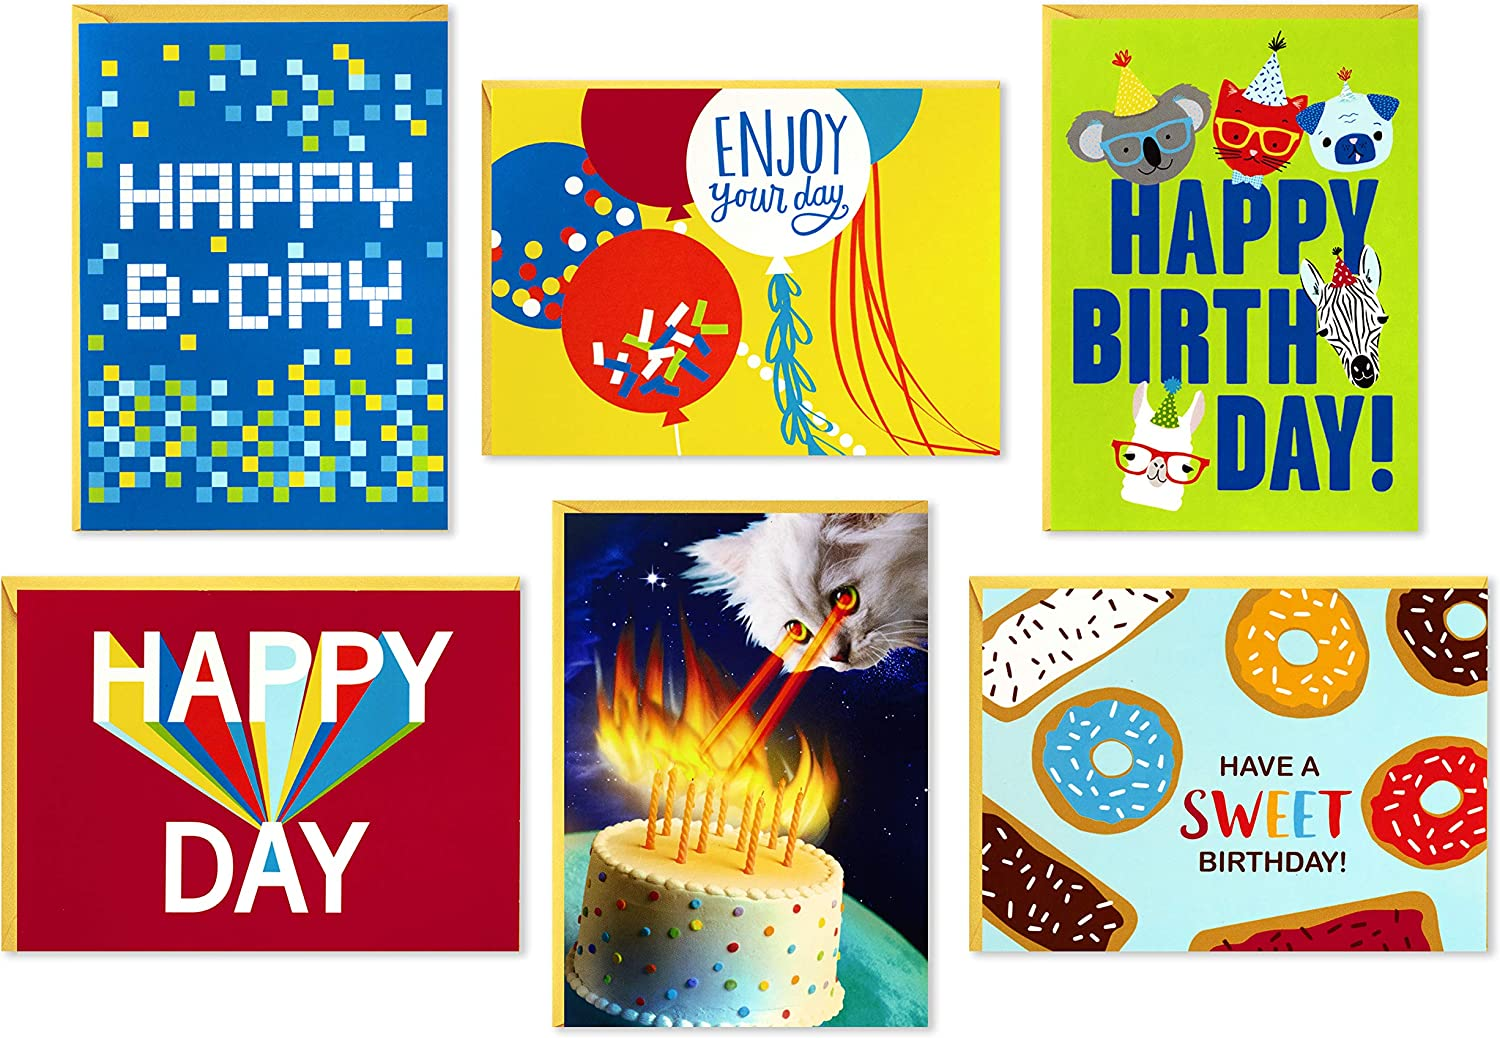 Hallmark Birthday Cards All items Fashion in the store Assortment with 36 Cat Envelopes